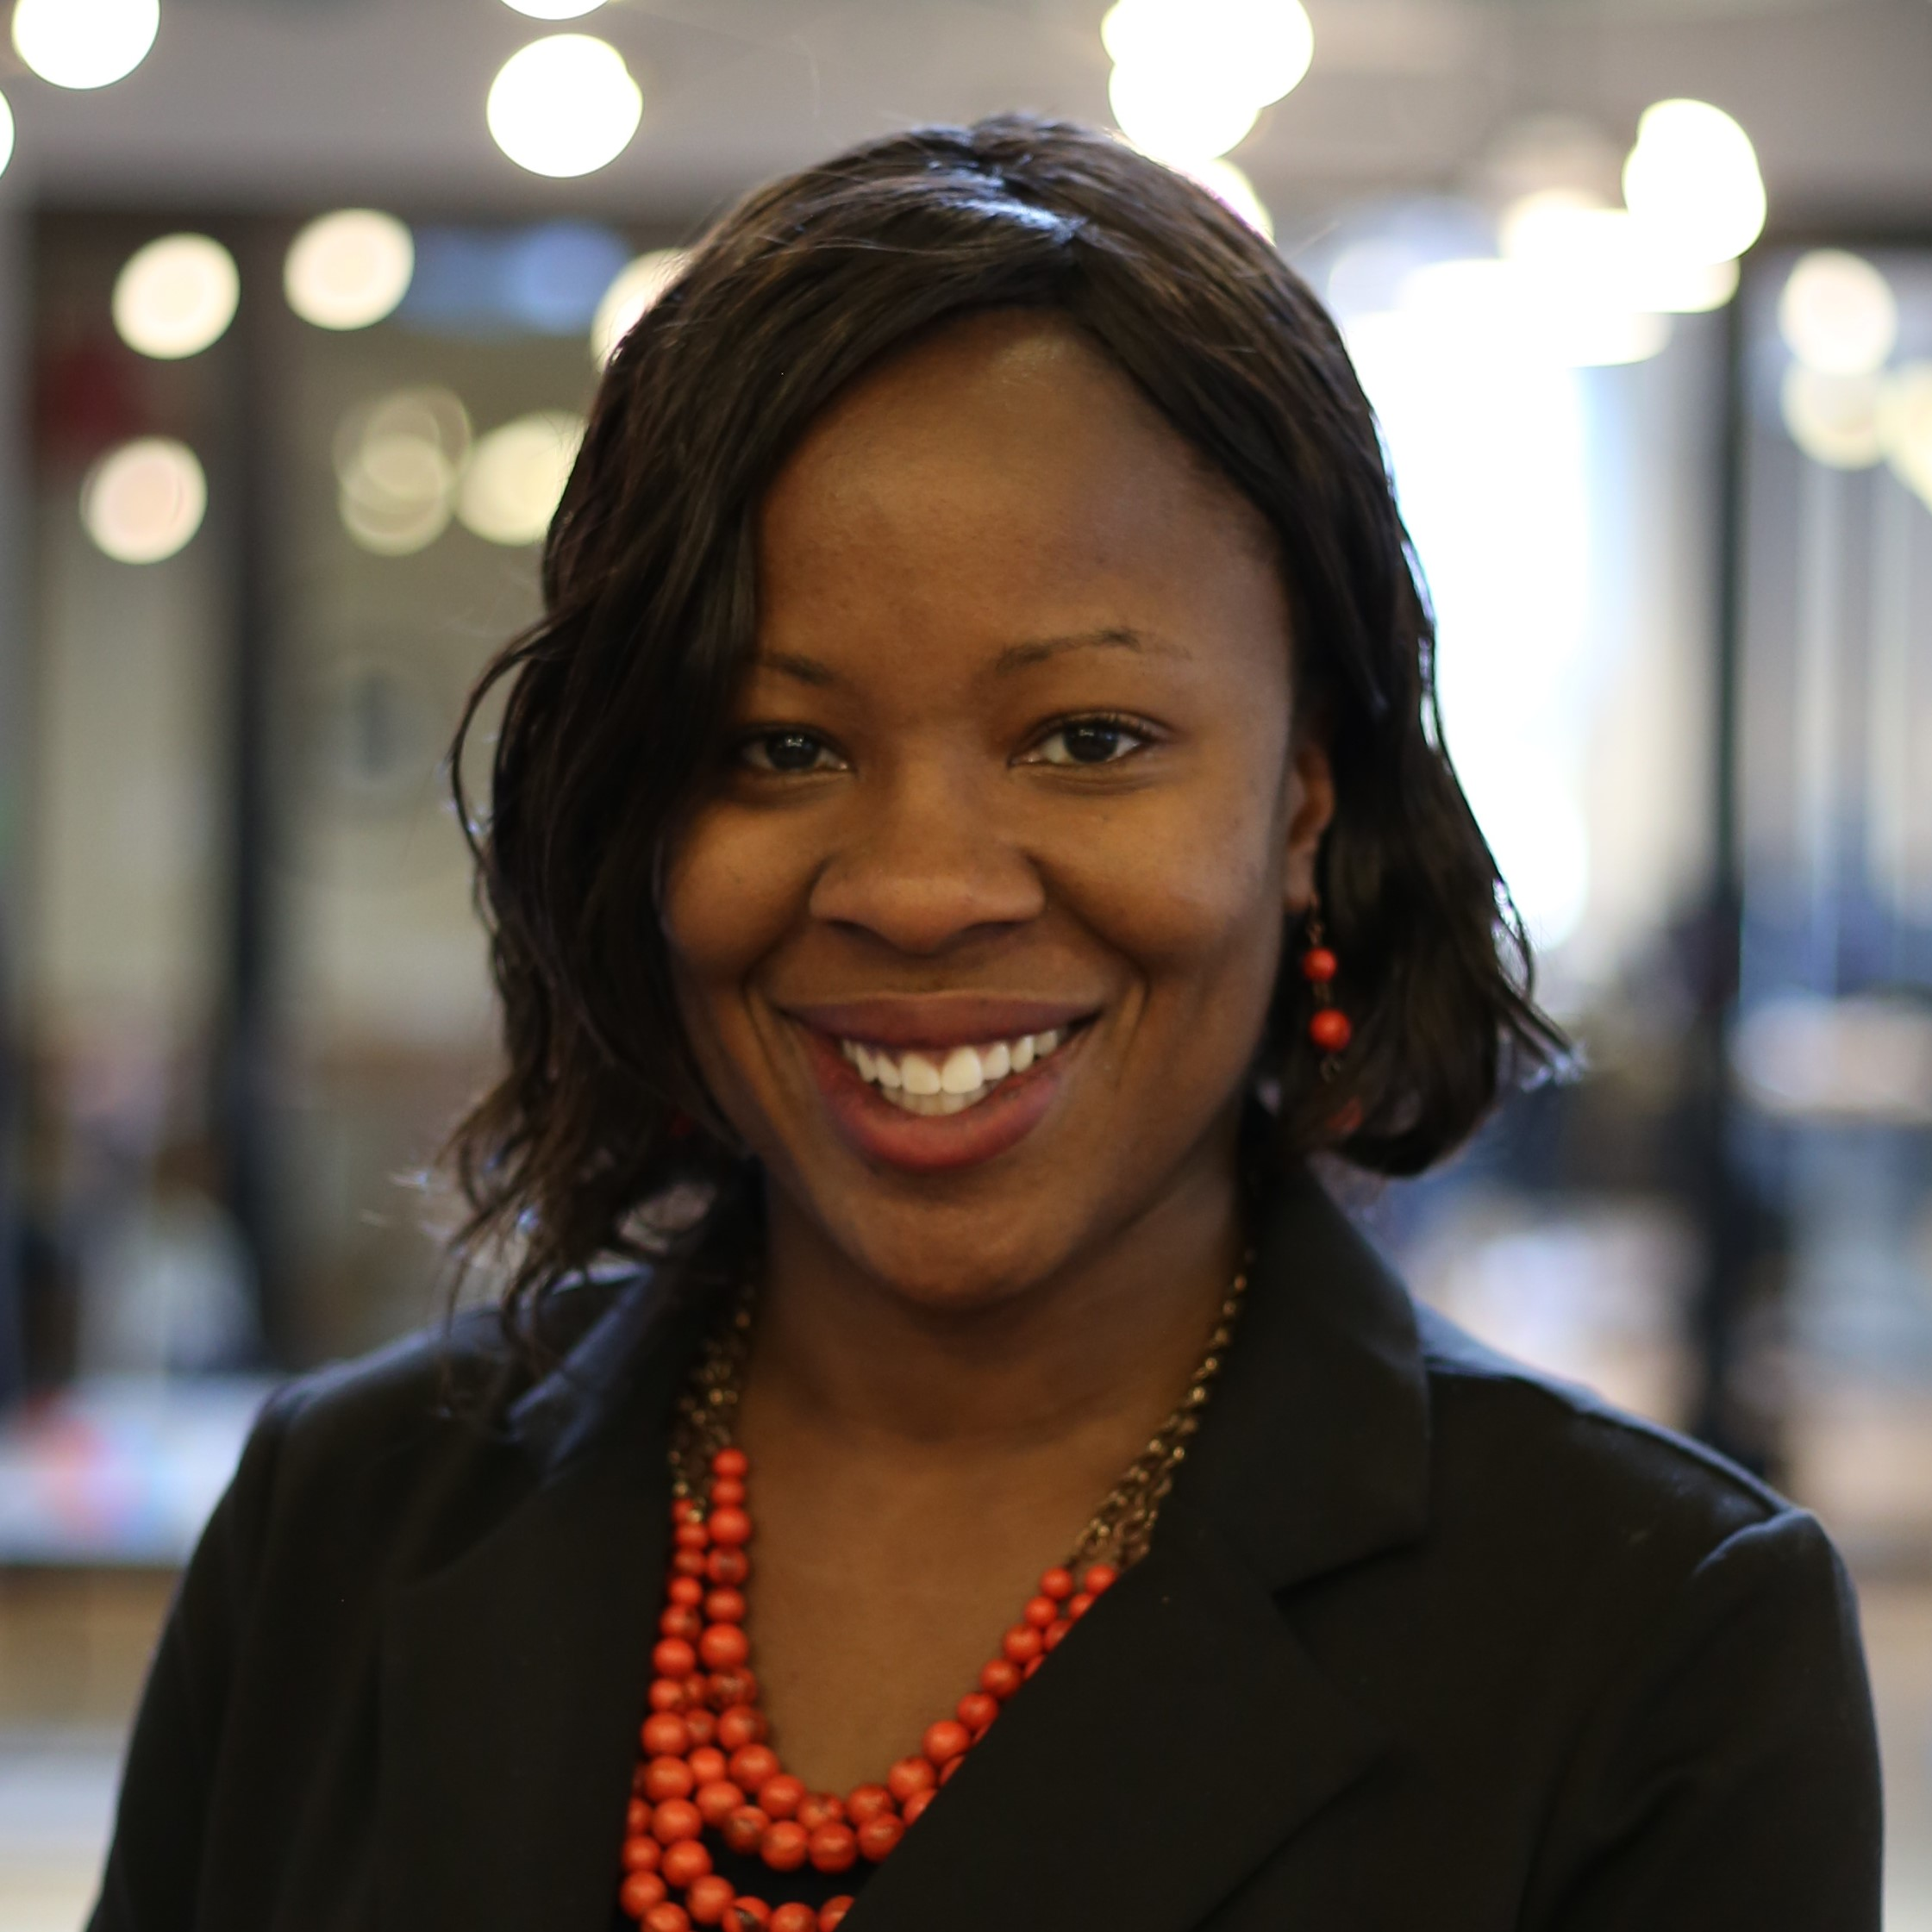 Nwando Olayiwola, MD, MPH, FAAFP - Family Physician & Chief Clinical Transformation Officer, RubiconMD